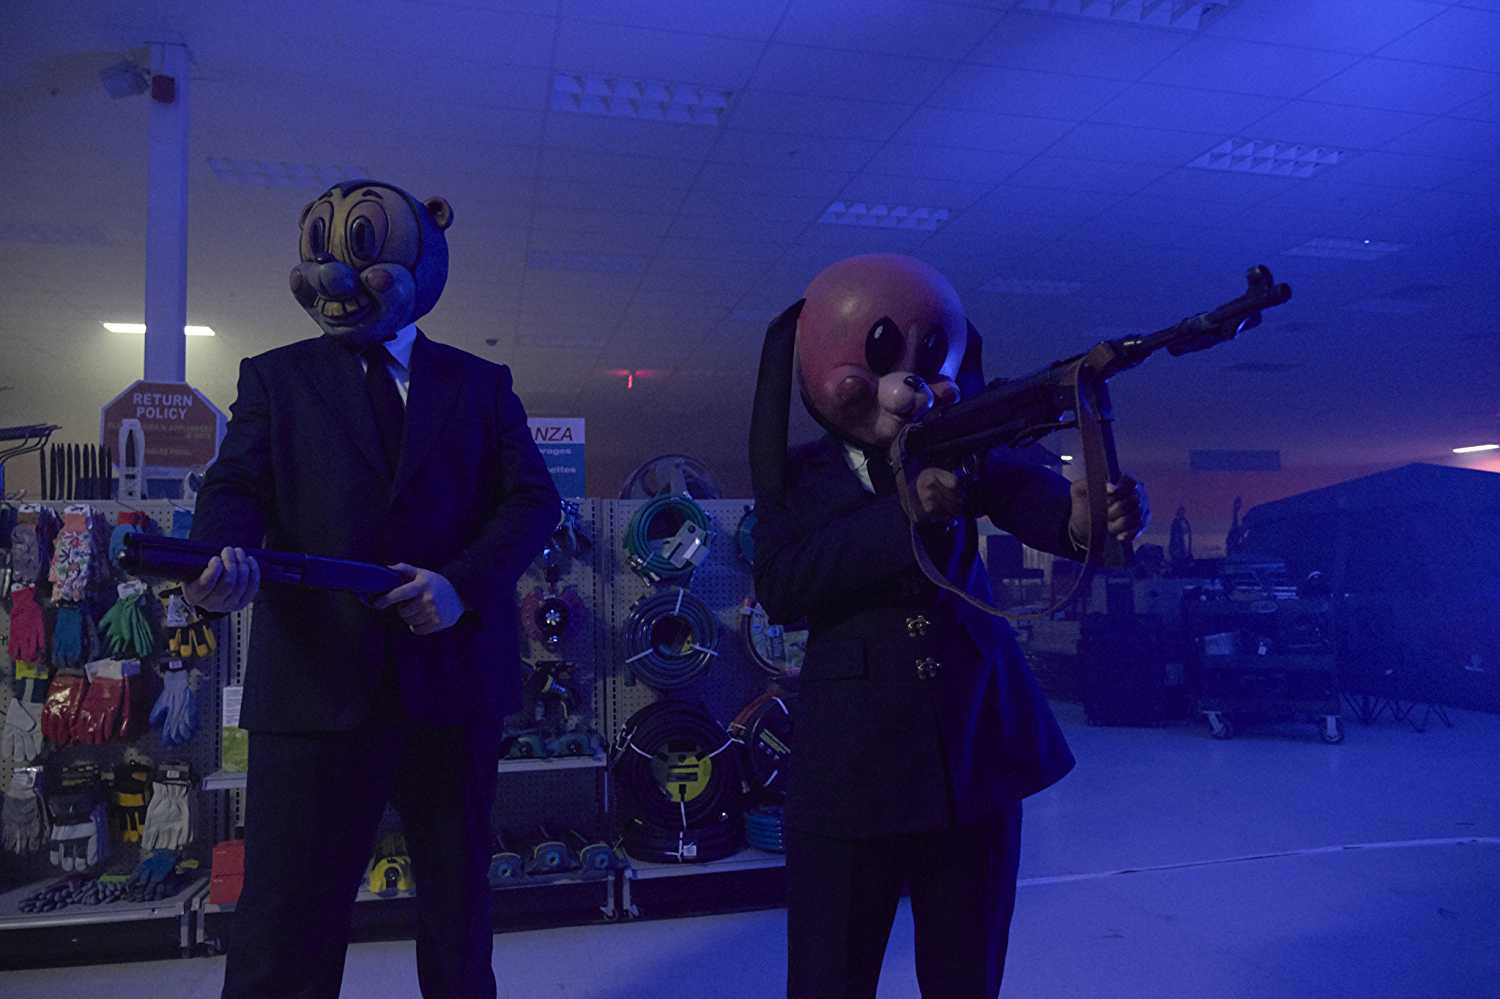 Hazel and Cha-Cha wearing their killing masks in 'The Umbrella Academy'. (Source: IMDB)